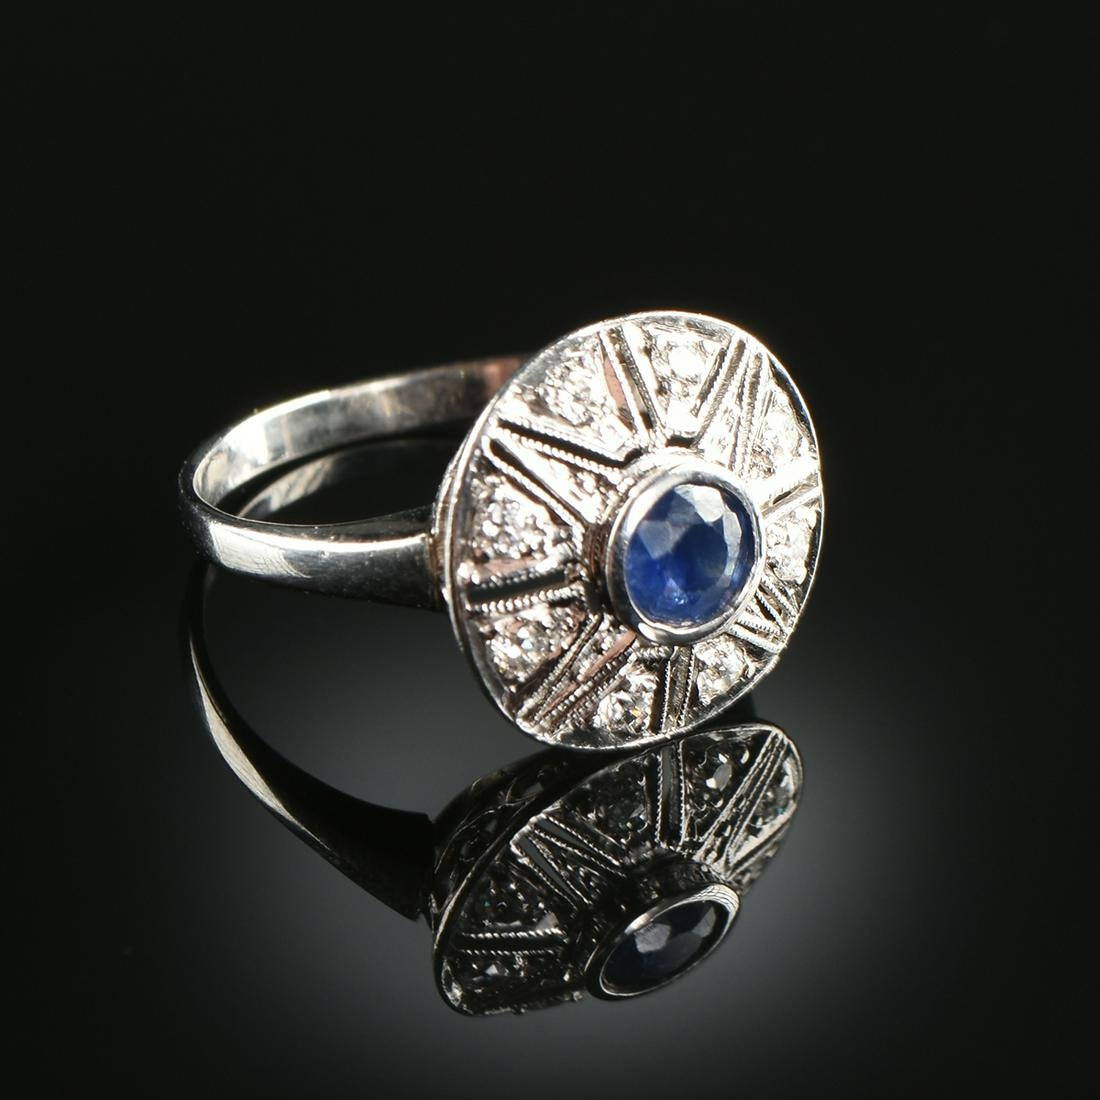 AN ART DECO STYLE 14K WHITE GOLD, SAPPHIRE, AND DIAMOND